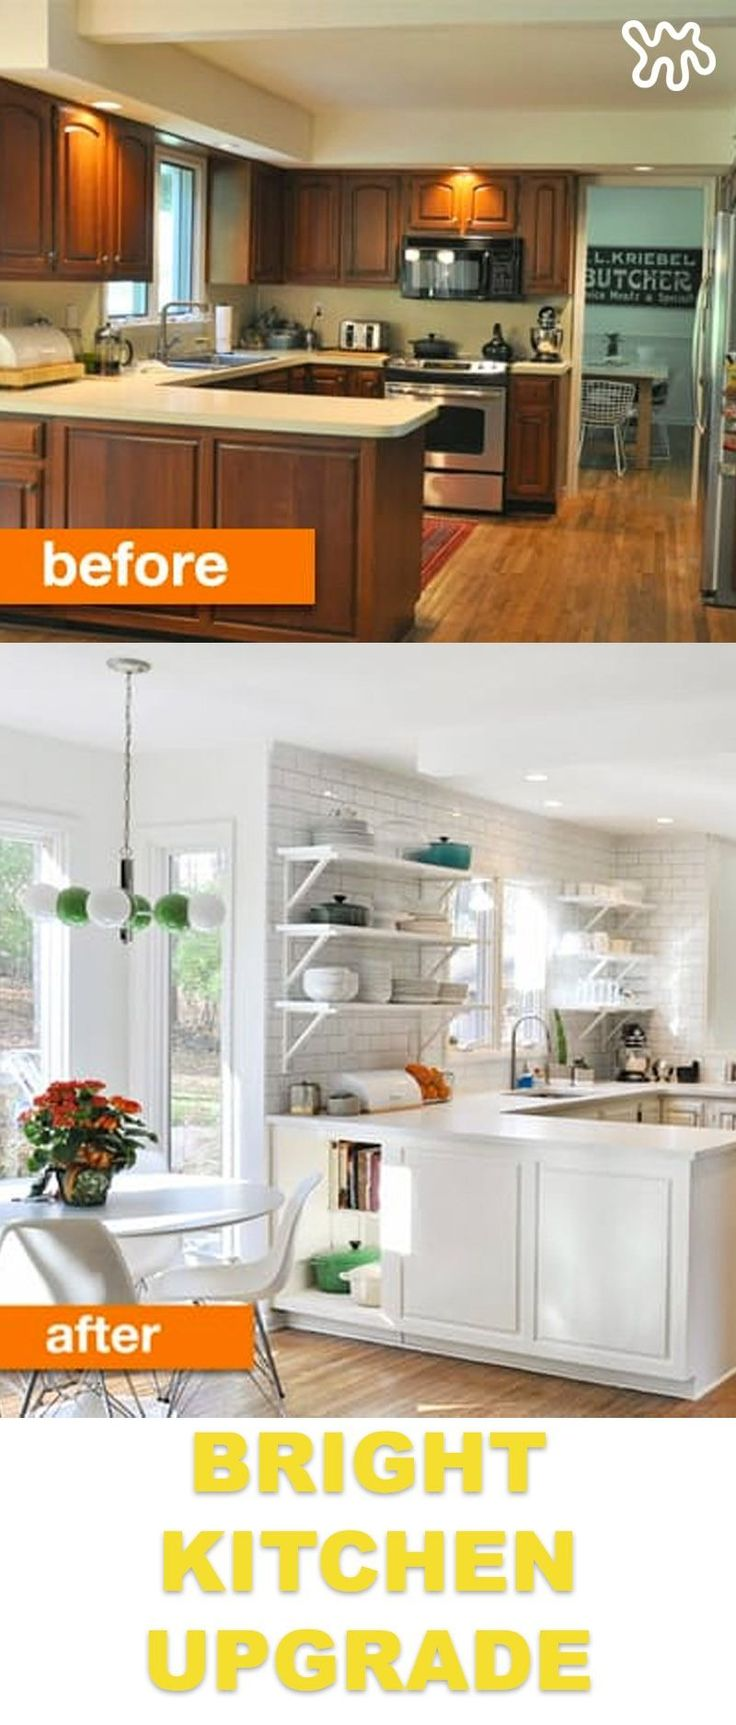 White Kitchen Remodel Before And After 1400 best before & after projects images on pinterest | apartment